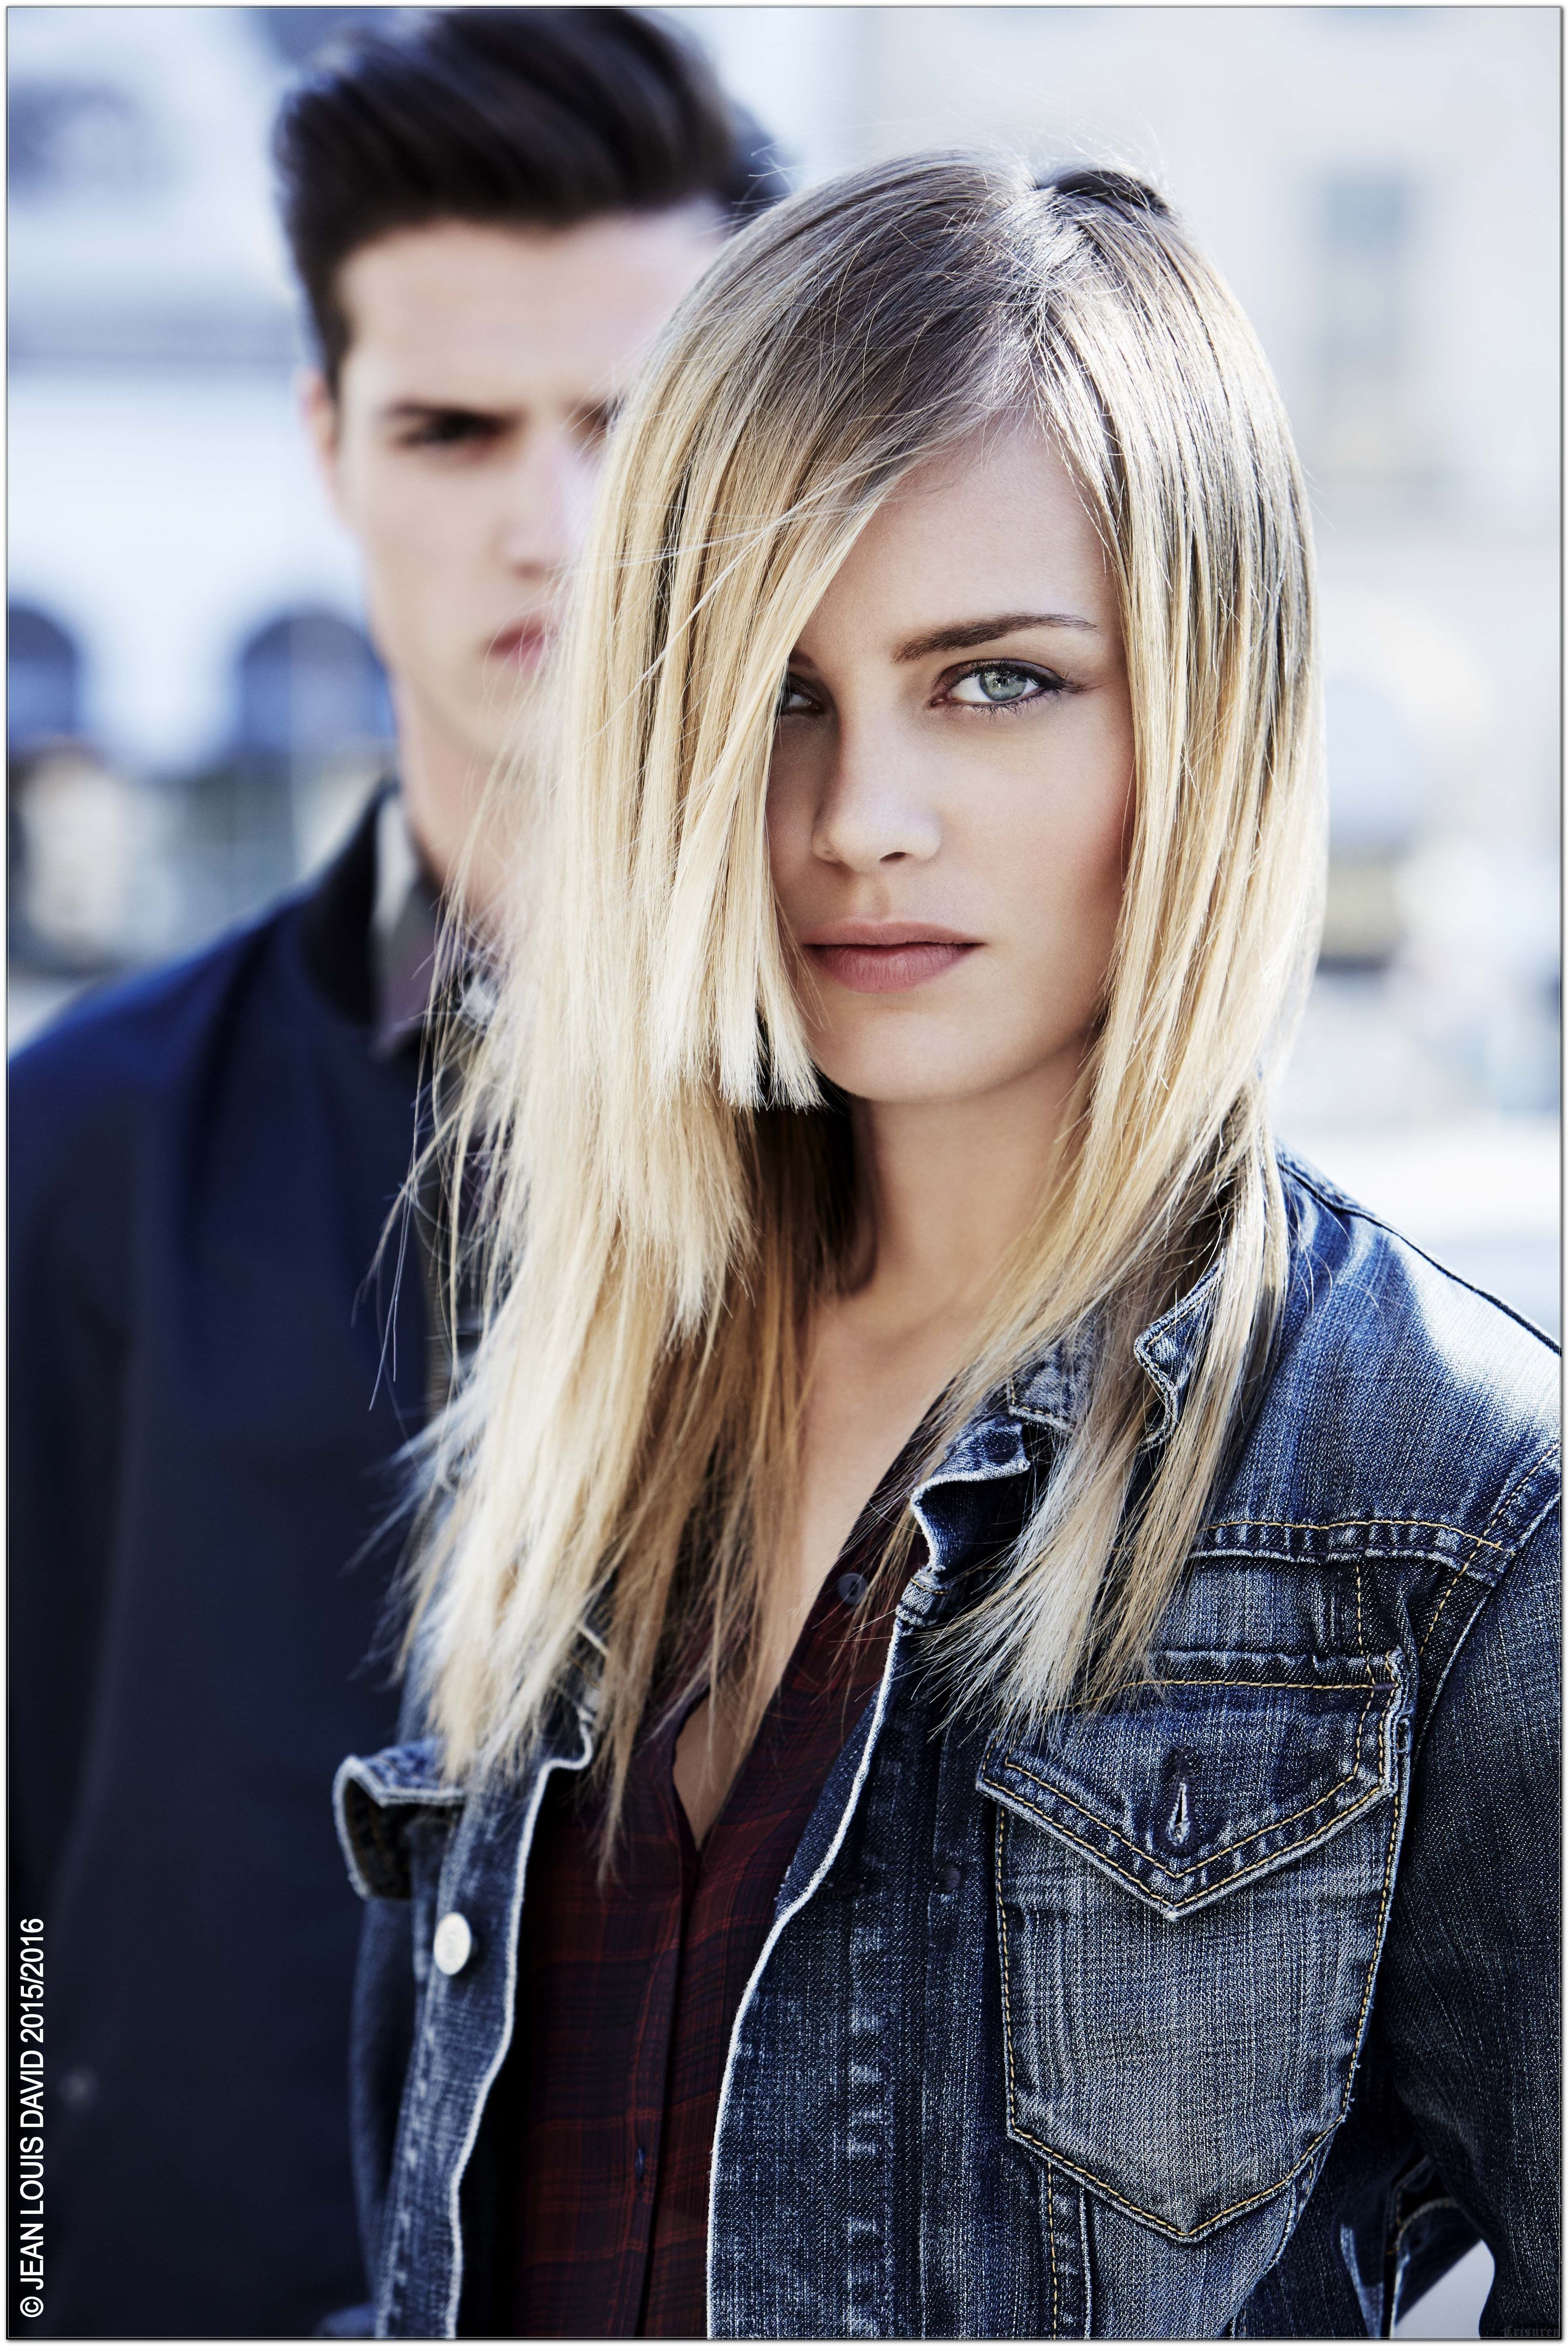 Frisuren Is Crucial To Your Business. Learn Why! for 2021